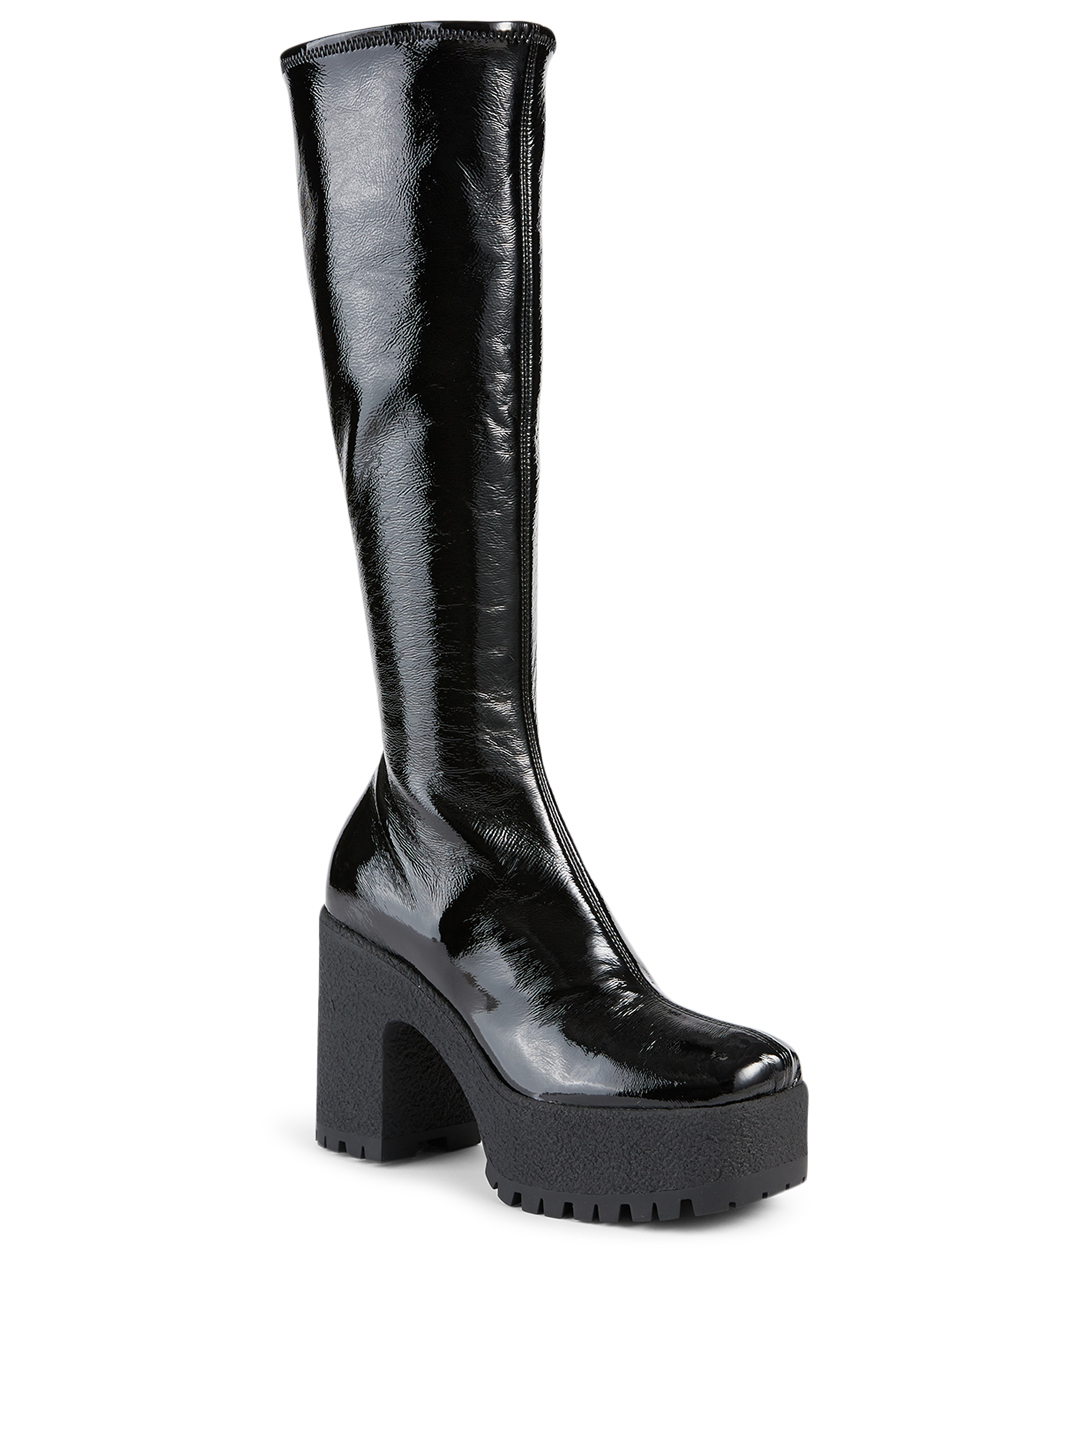 MIU MIU Patent Platform Knee-High Boots Women's Black